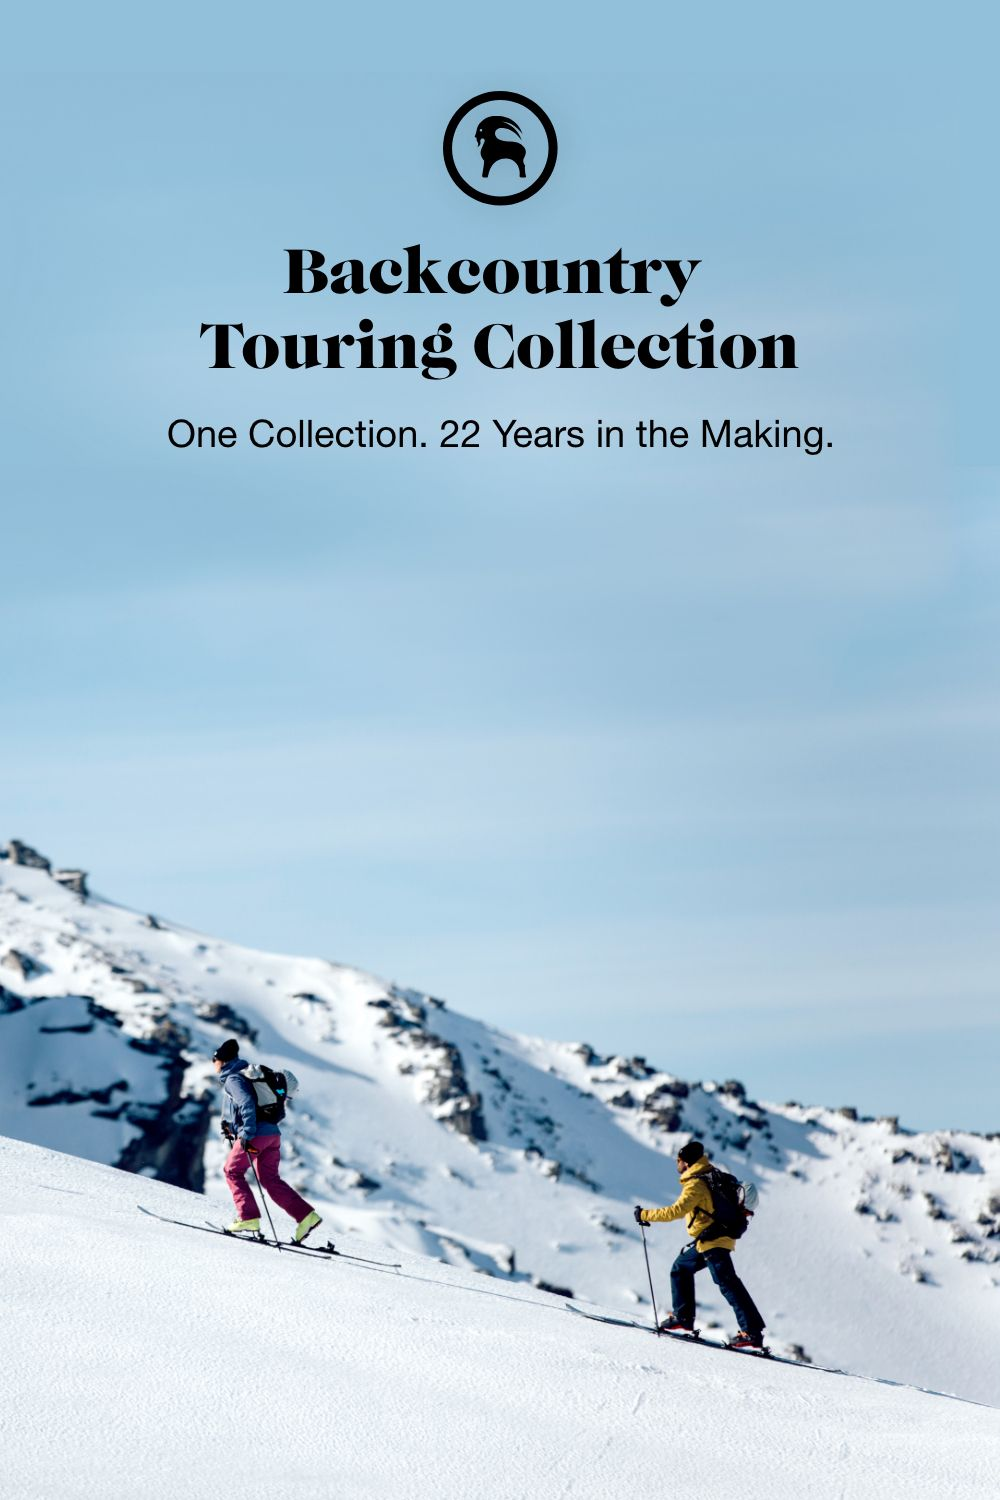 Backcountry Came To Life Over 20 Years Ago In A Garage Beneath The Shadows Of The Wasatch The Same Mountains We Call Home T Travel Nordic Skiing Trip Planning